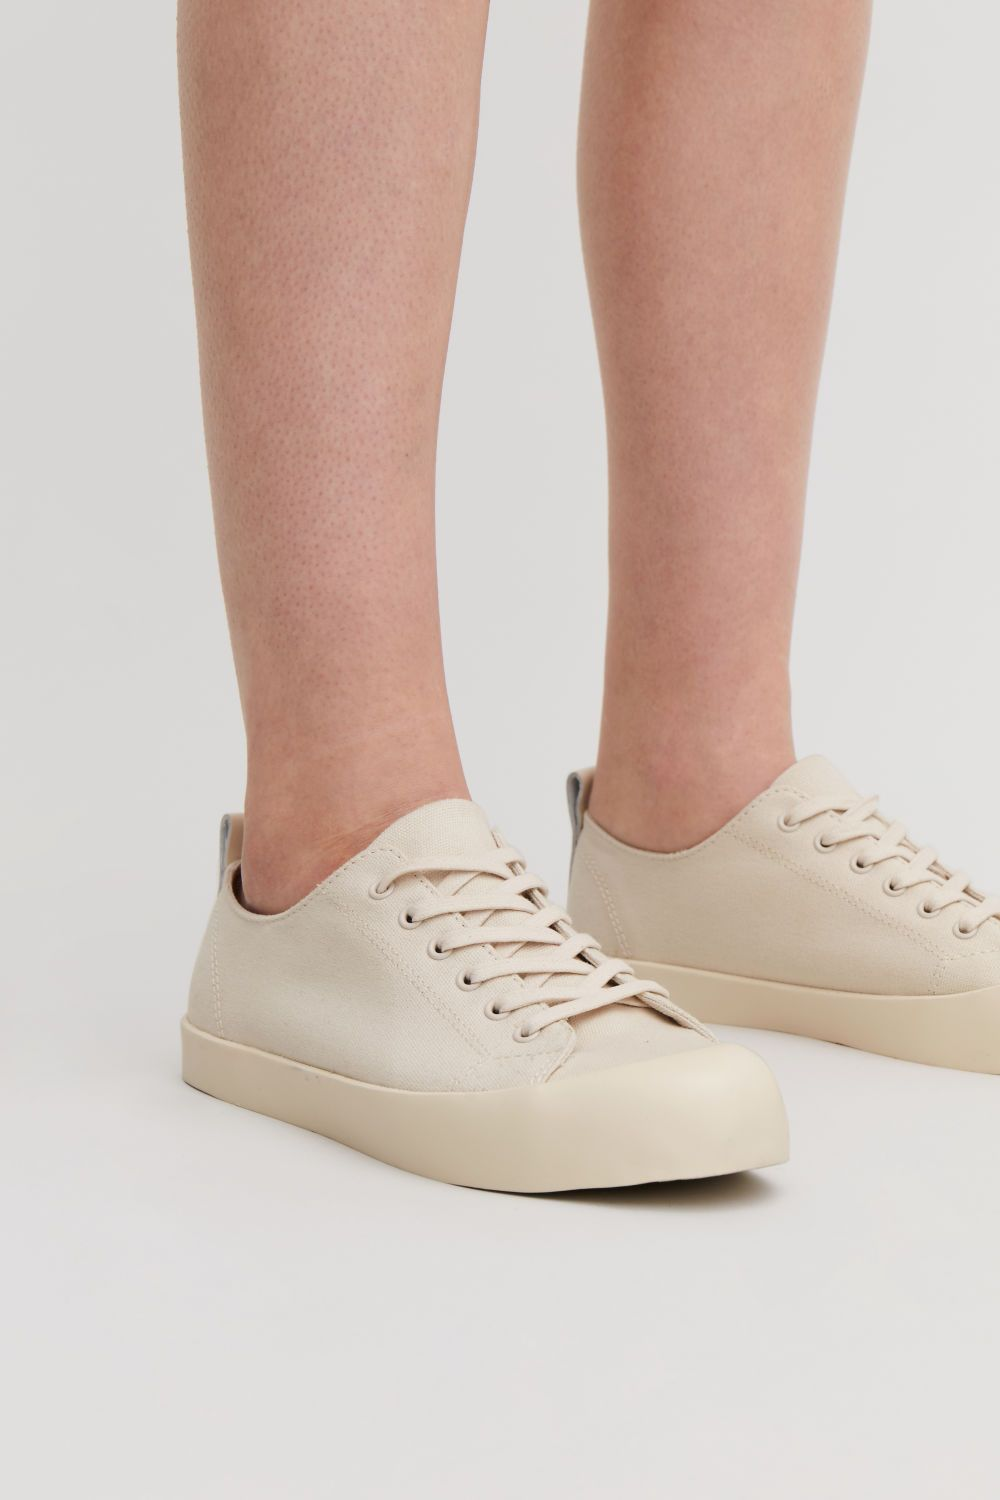 COS PL | Sneakers, Women shoes, Womens